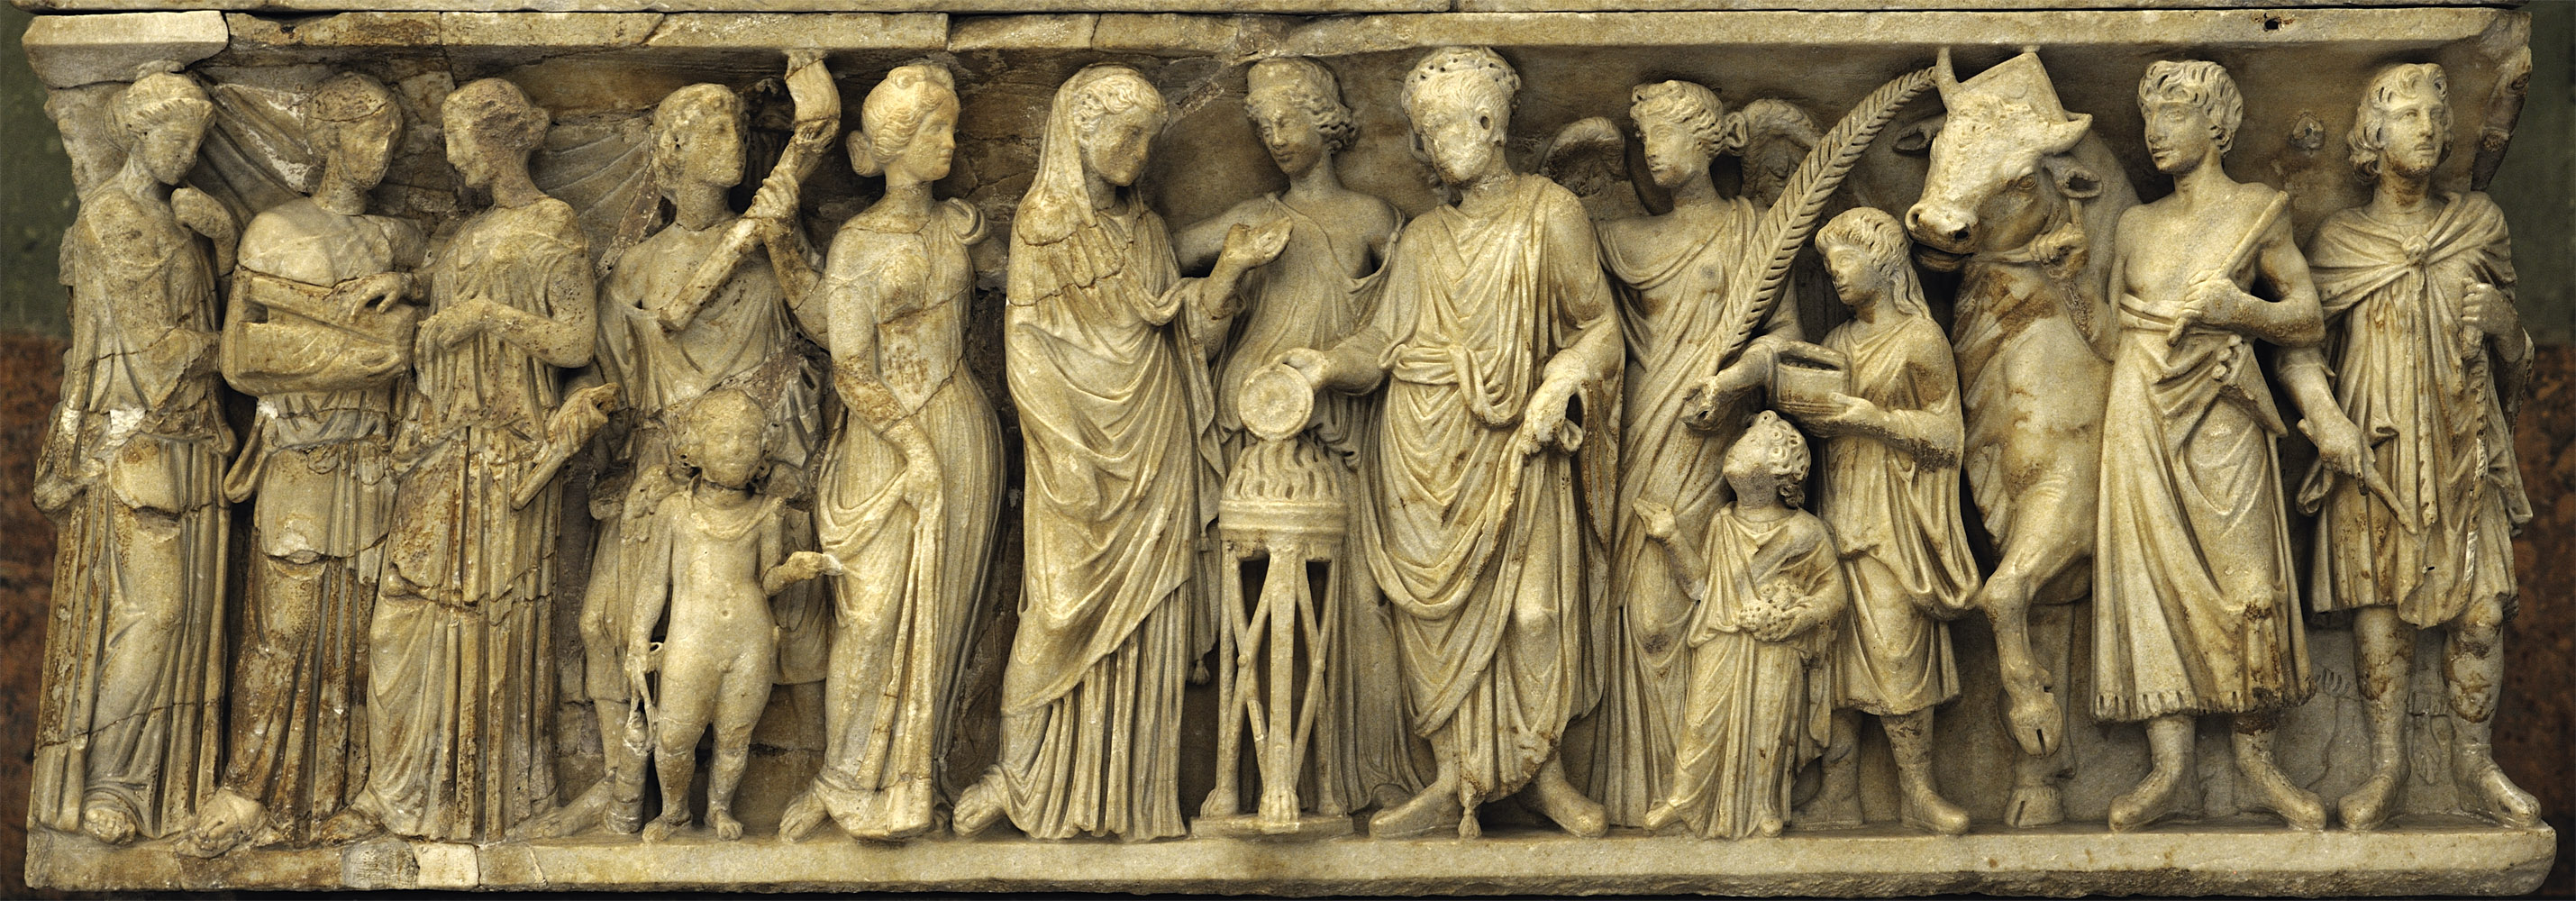 Sarcophagus with a matrimonial ceremony (so-called wedding or marriage sarcophagus) — front relief. Marble. 3rd cent. CE. Inv. No. A 433. Saint Petersburg, The State Hermitage Museum